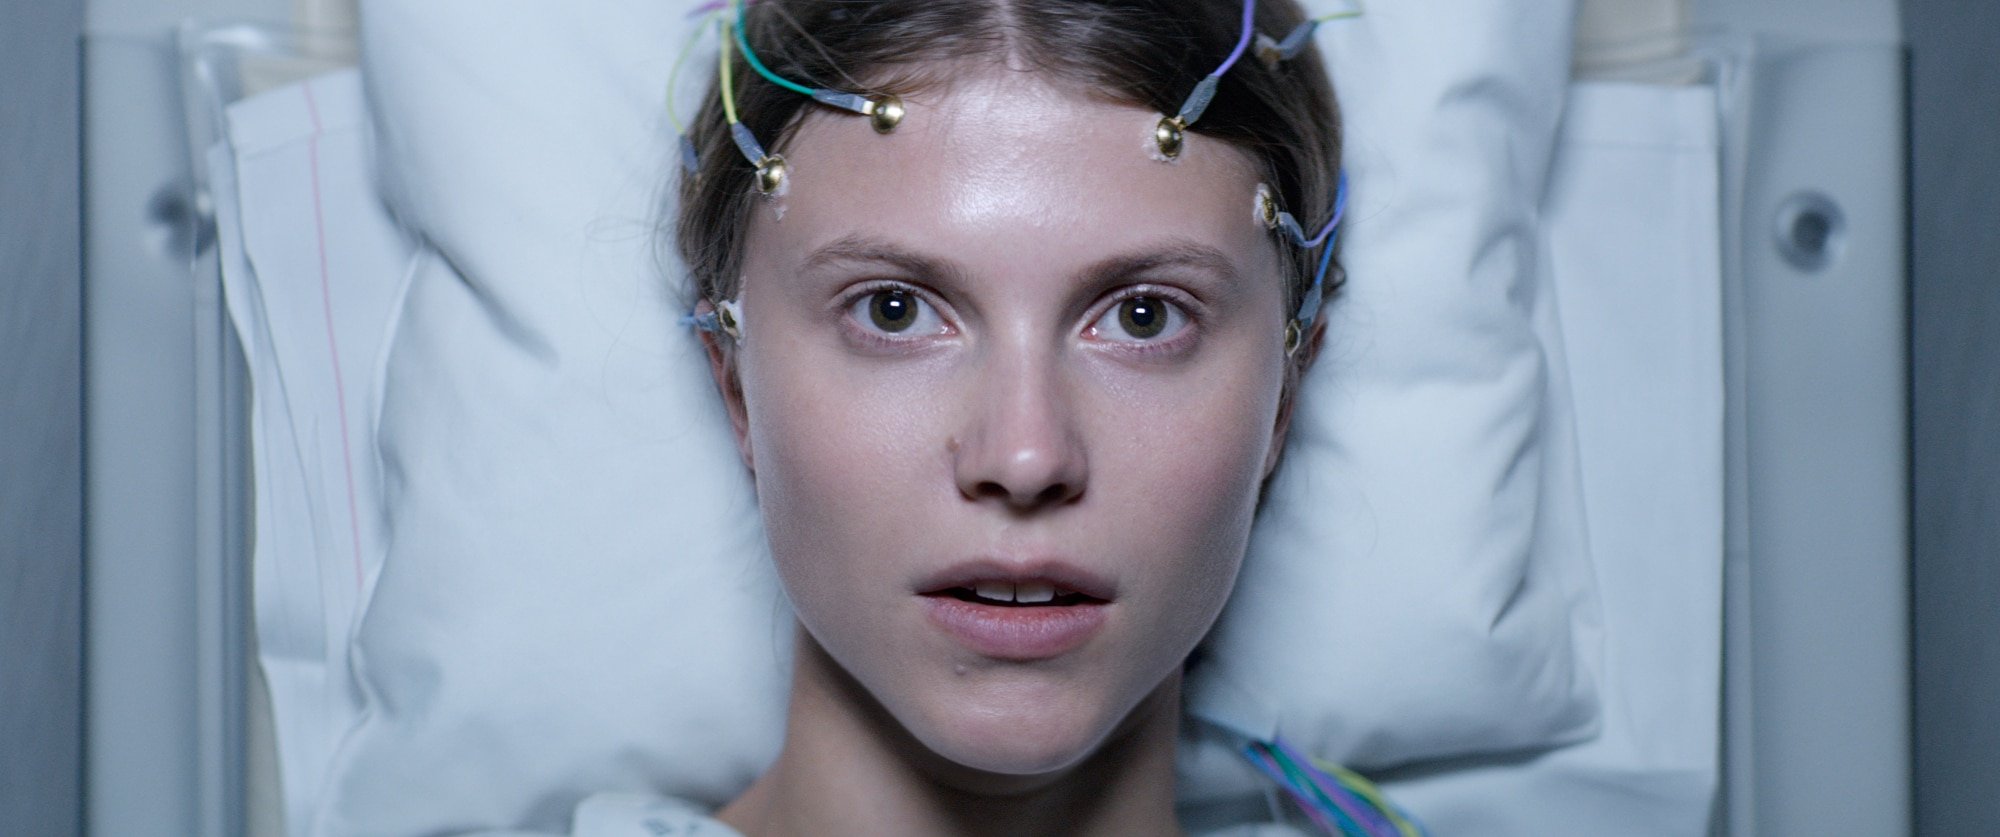 THELMA fantasticfest2017 - Exclusive Interview with Thelma's Joachim Trier